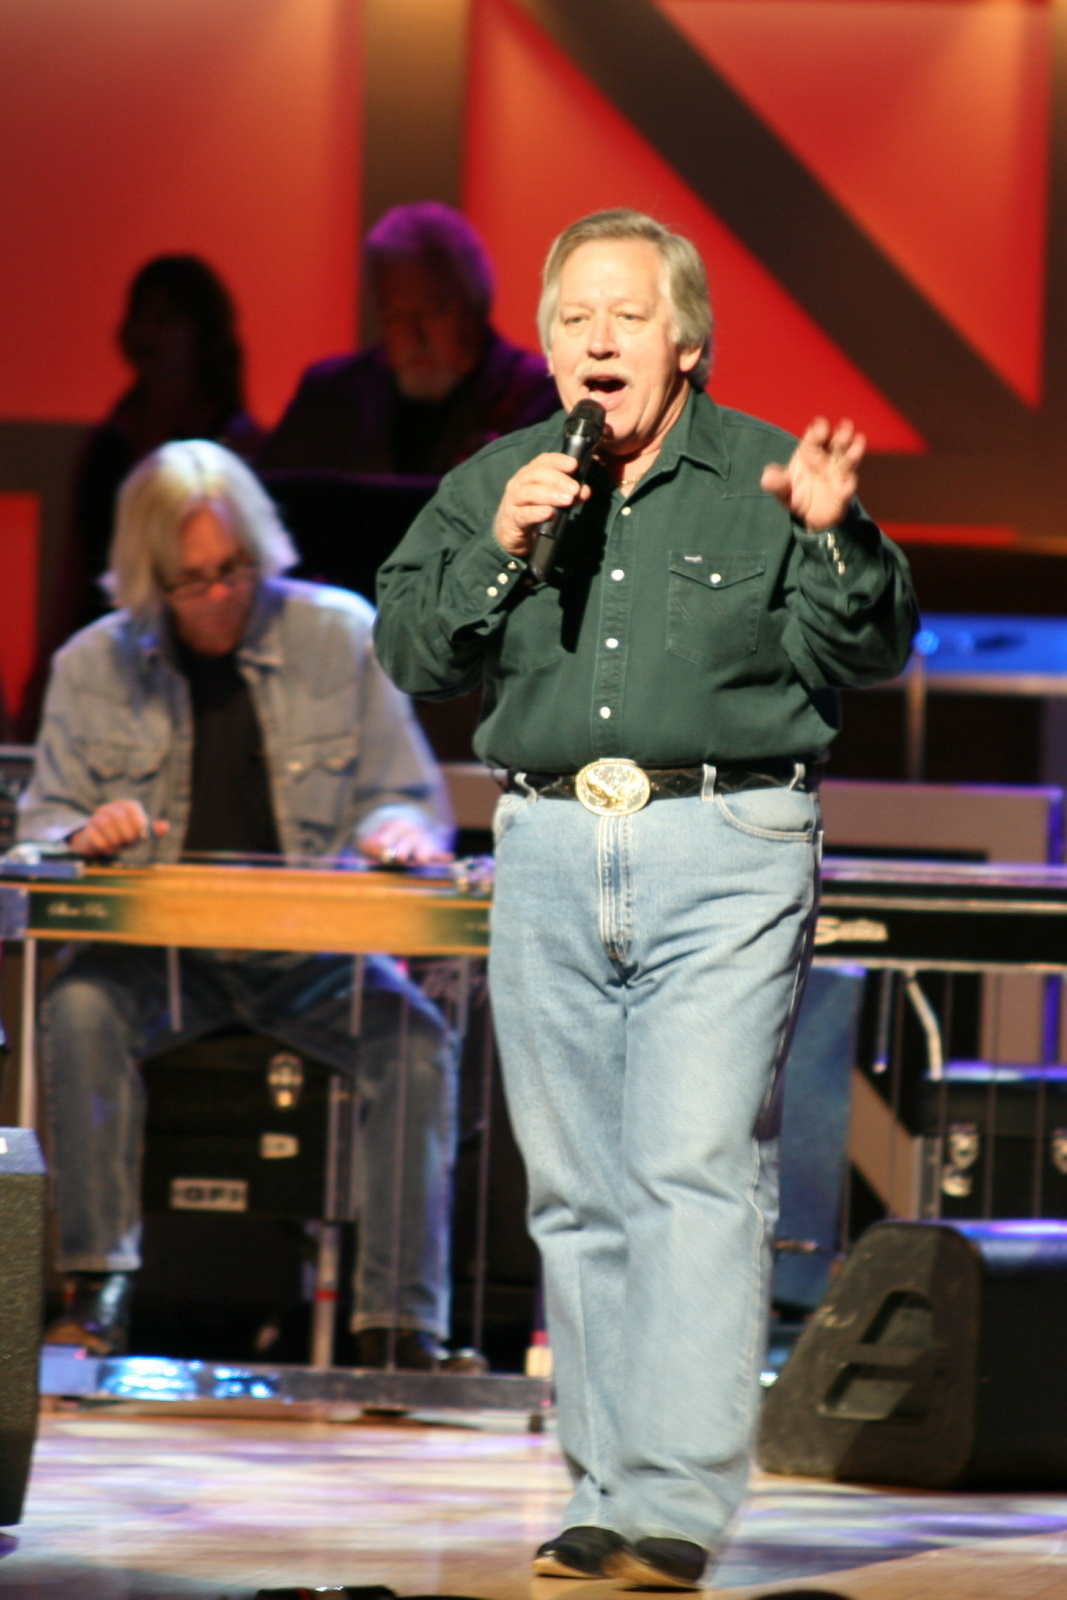 John Conlee Phone number, Email Id, Fanmail, Instagram, Tiktok, and Contact Details